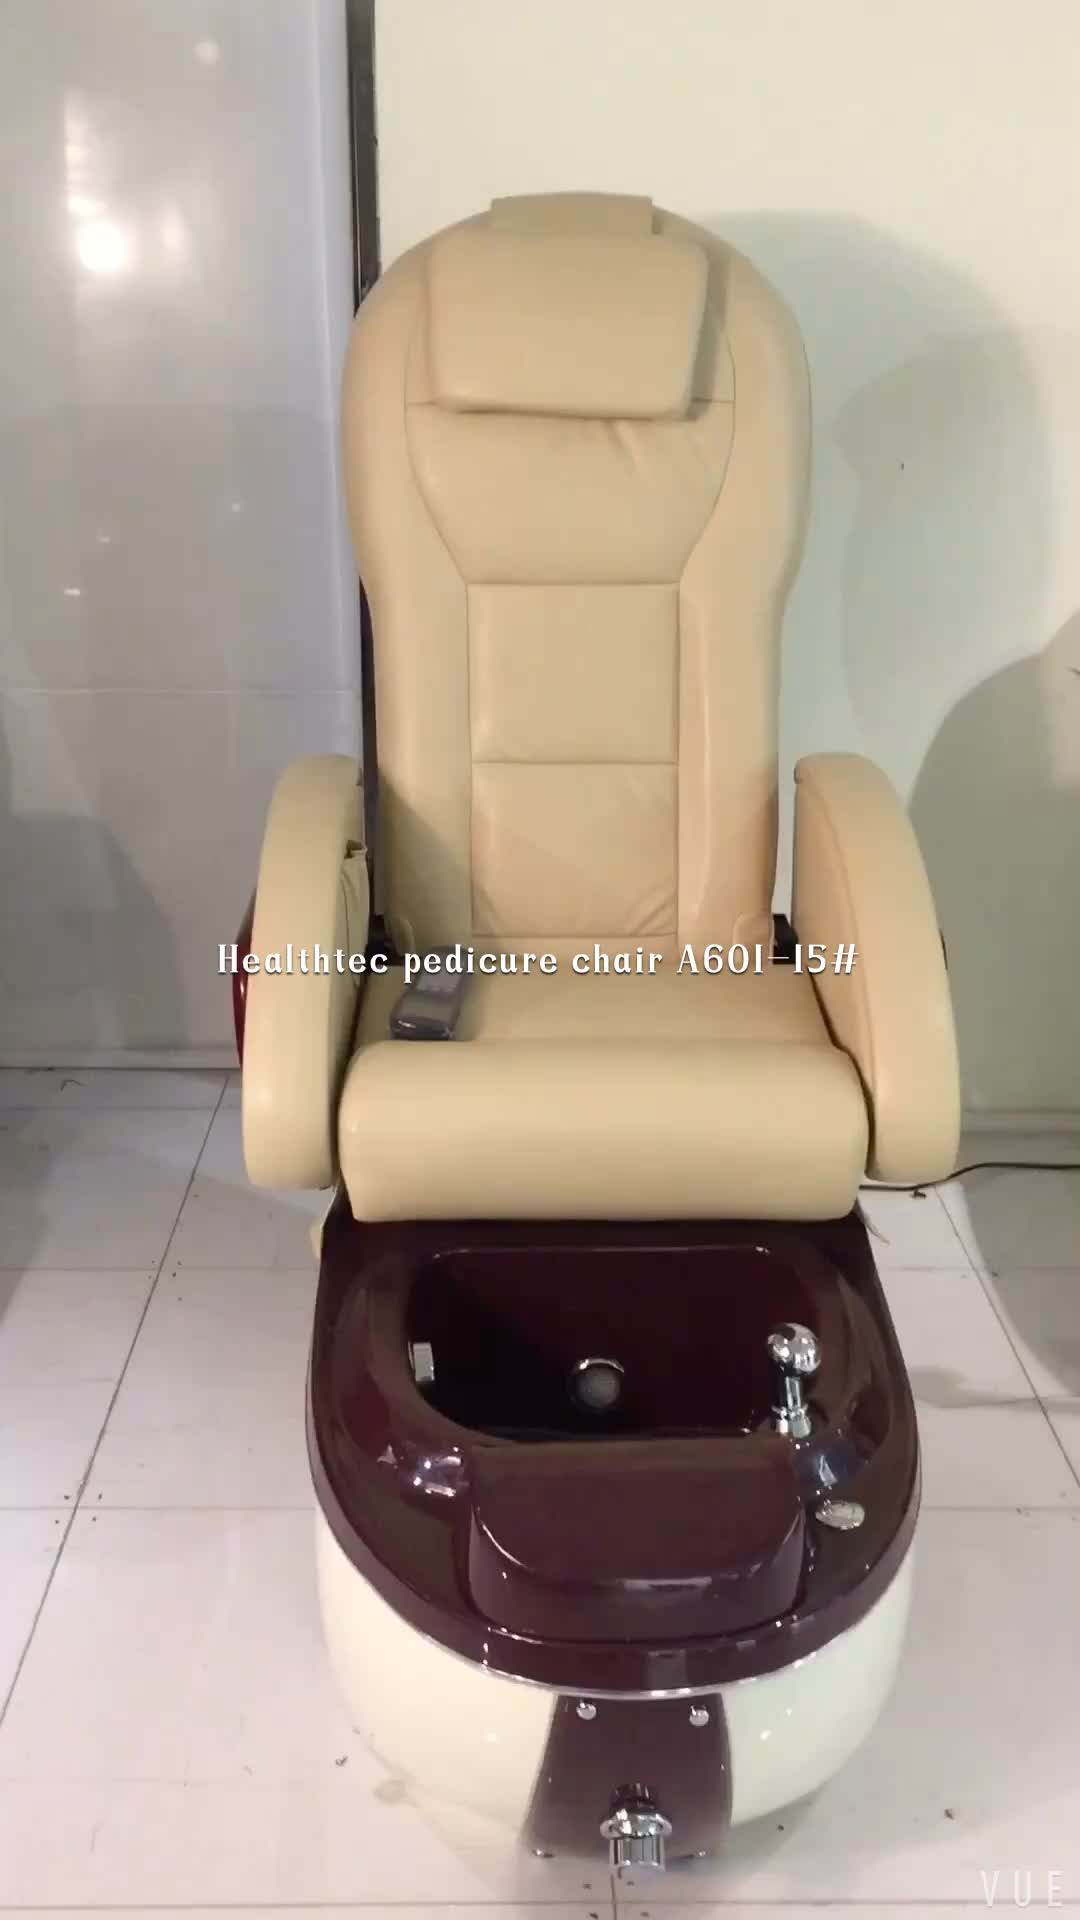 European Touch Pedicure Chair Pipeless Jet Chair For Rimming Pedicure Chair Leather Cover Wholesale European Touch Cheap Pedicure Chairs Buy European Touch Pedicure Chairs Cheap